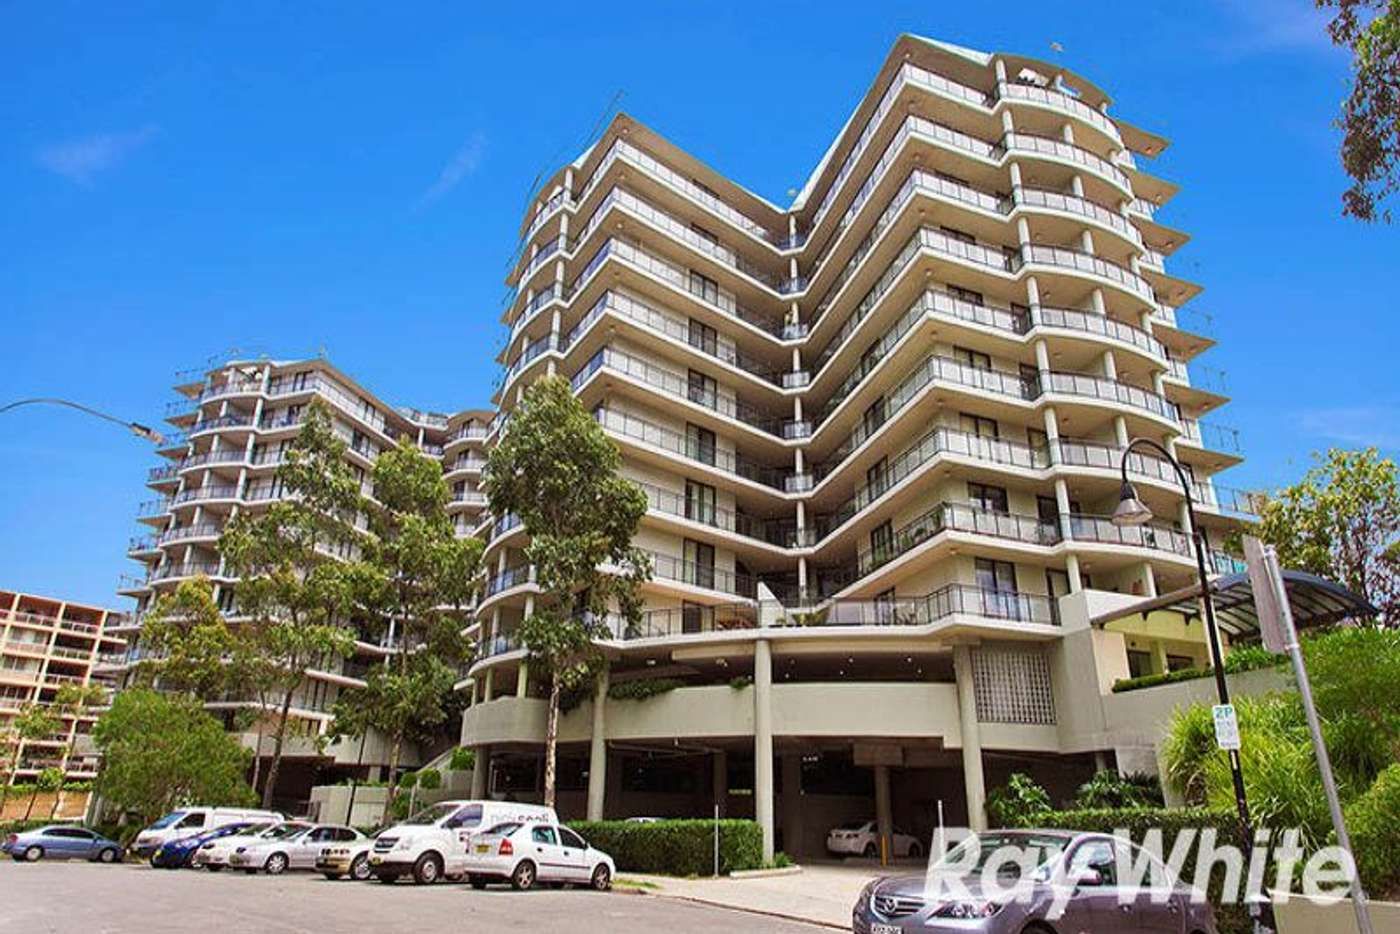 Main view of Homely apartment listing, 602/7 Keats Avenue, Rockdale NSW 2216